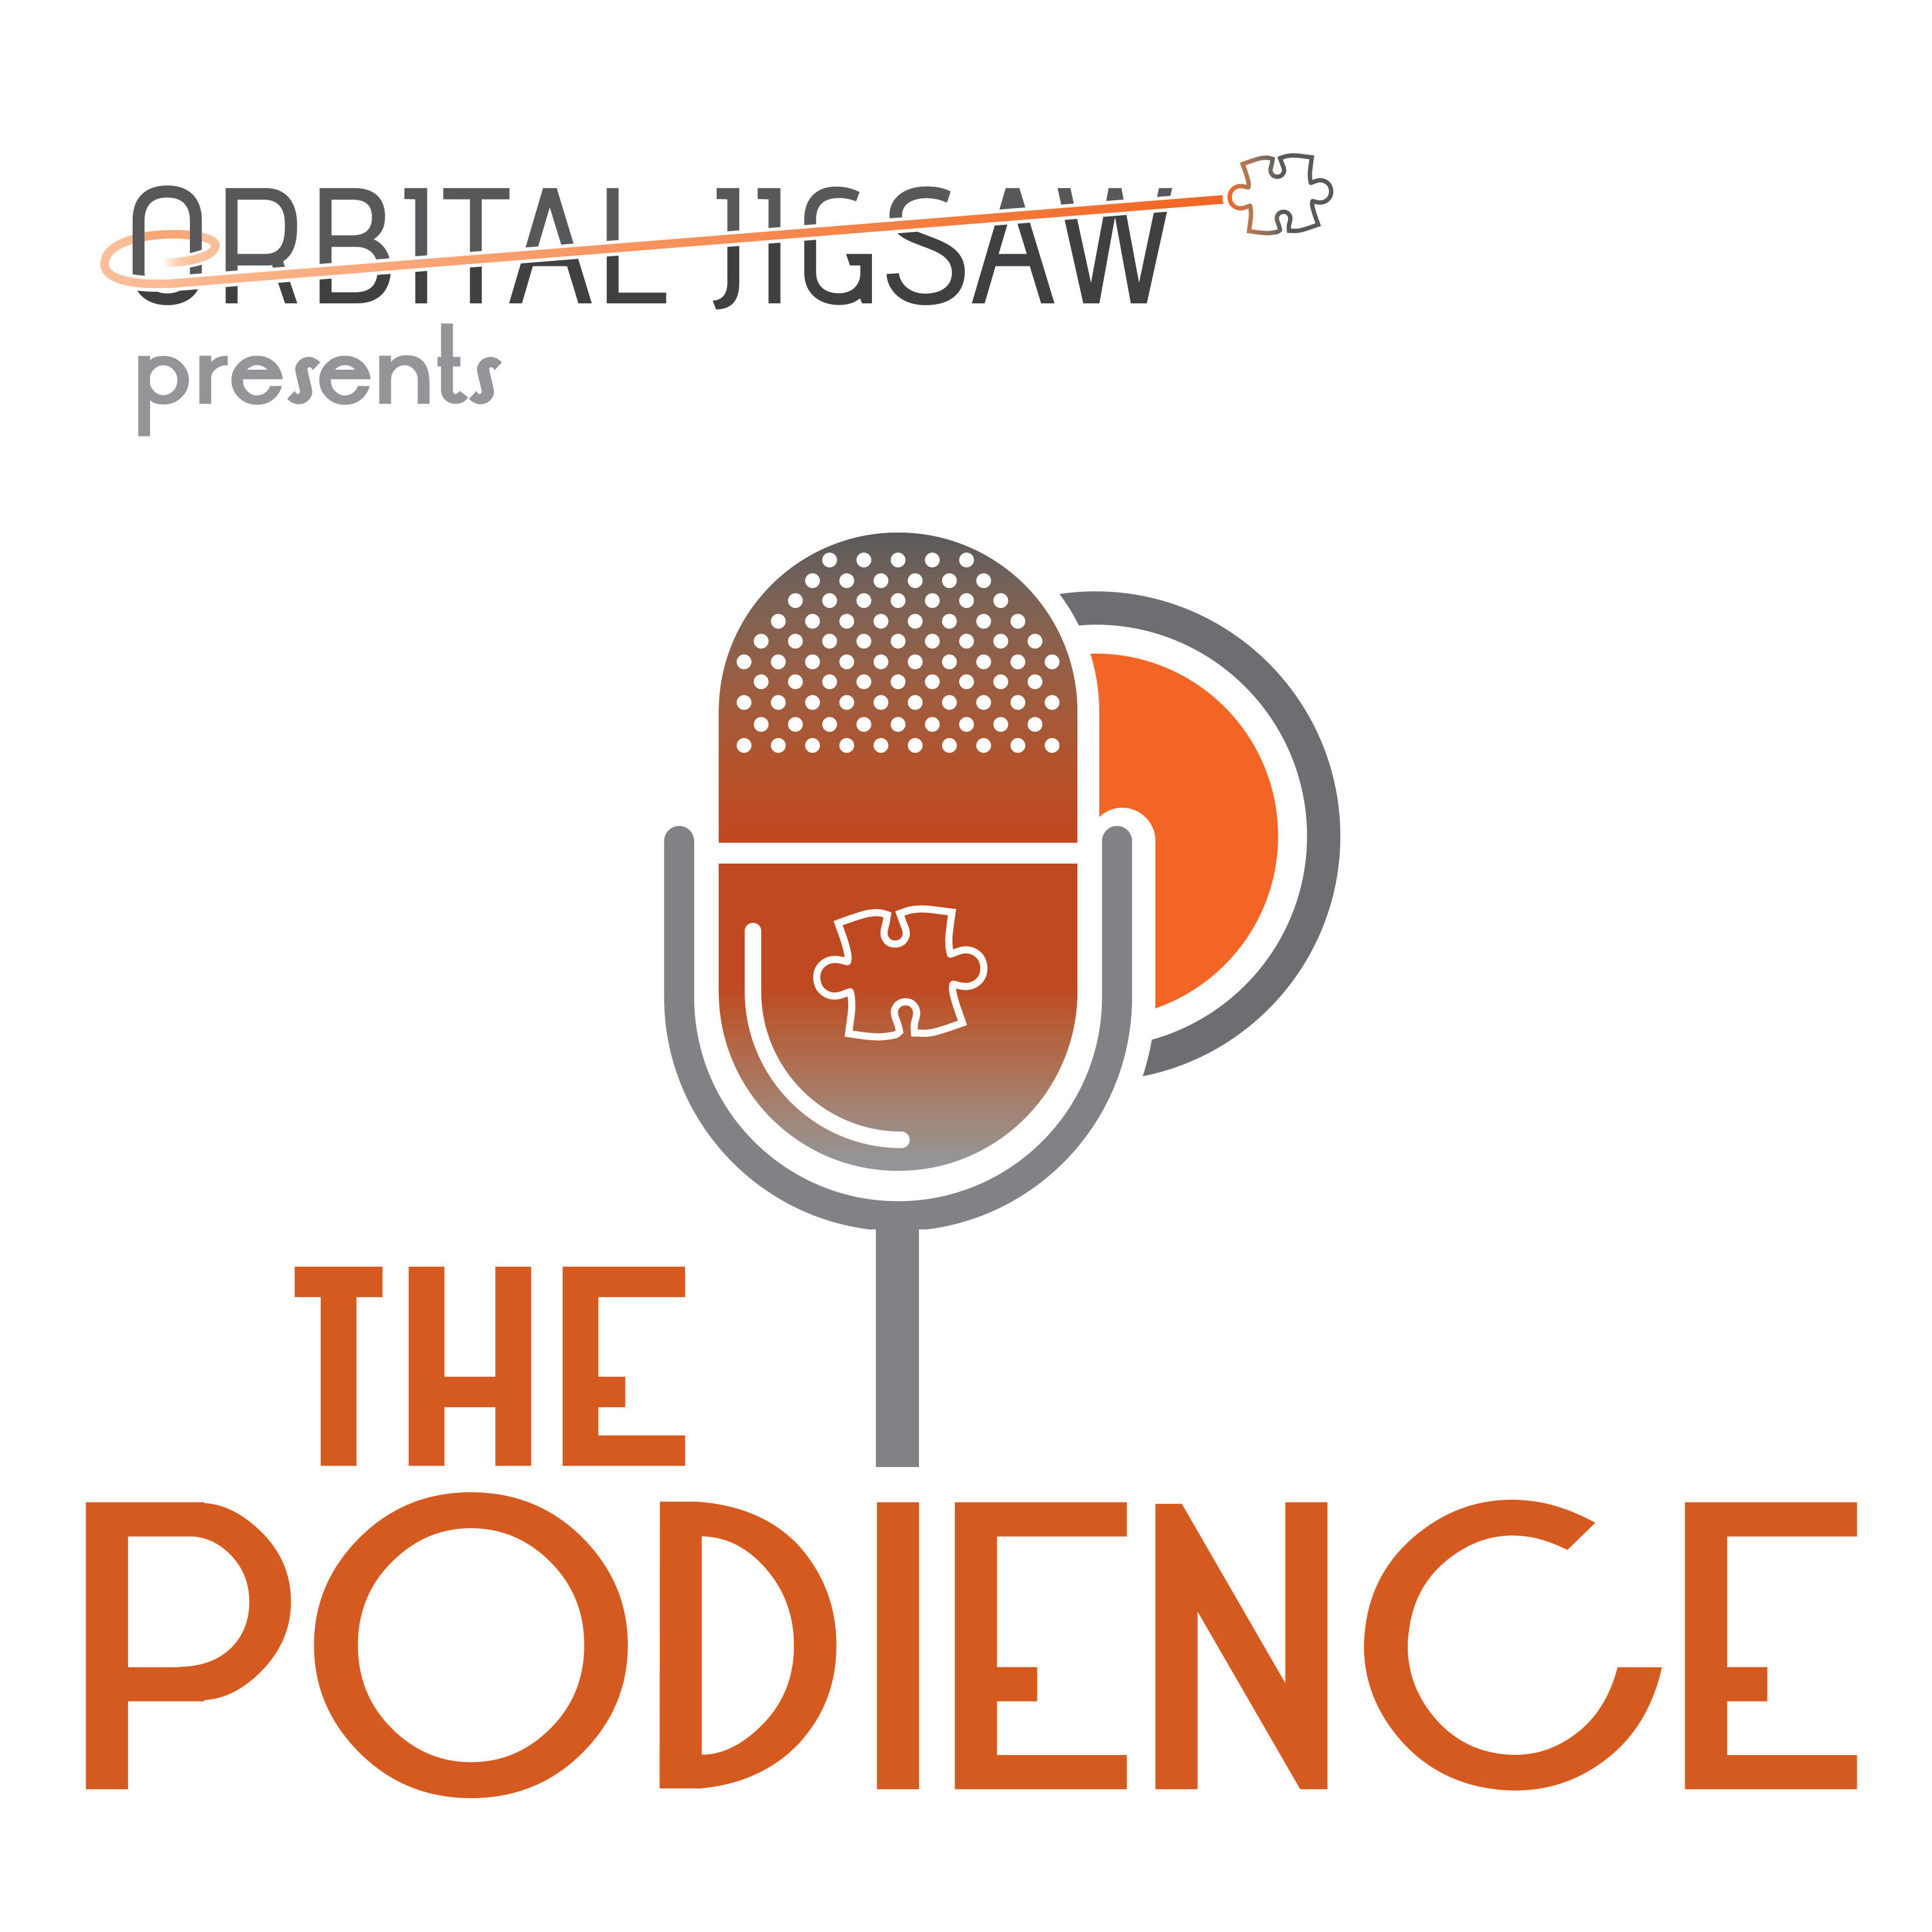 The Podience